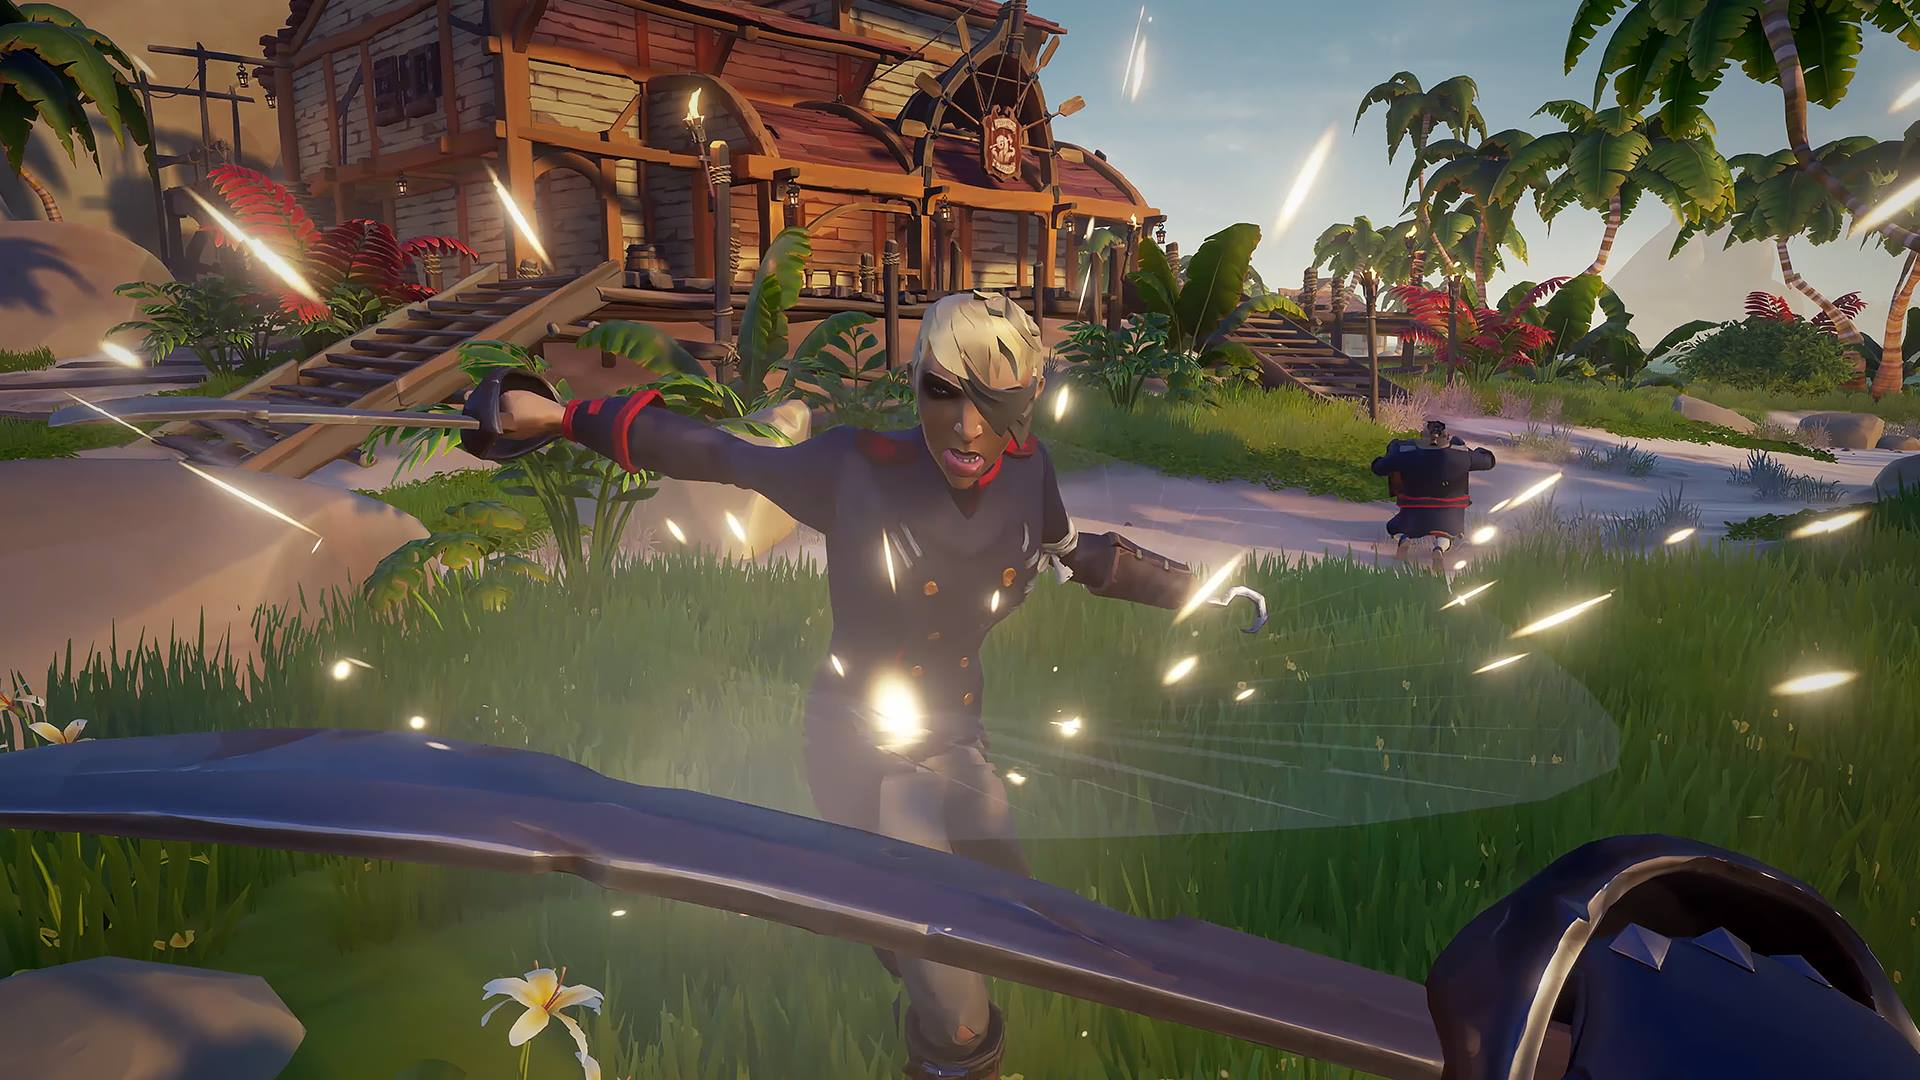 Sea of Thieves update 2.0.15 fixes hitreg